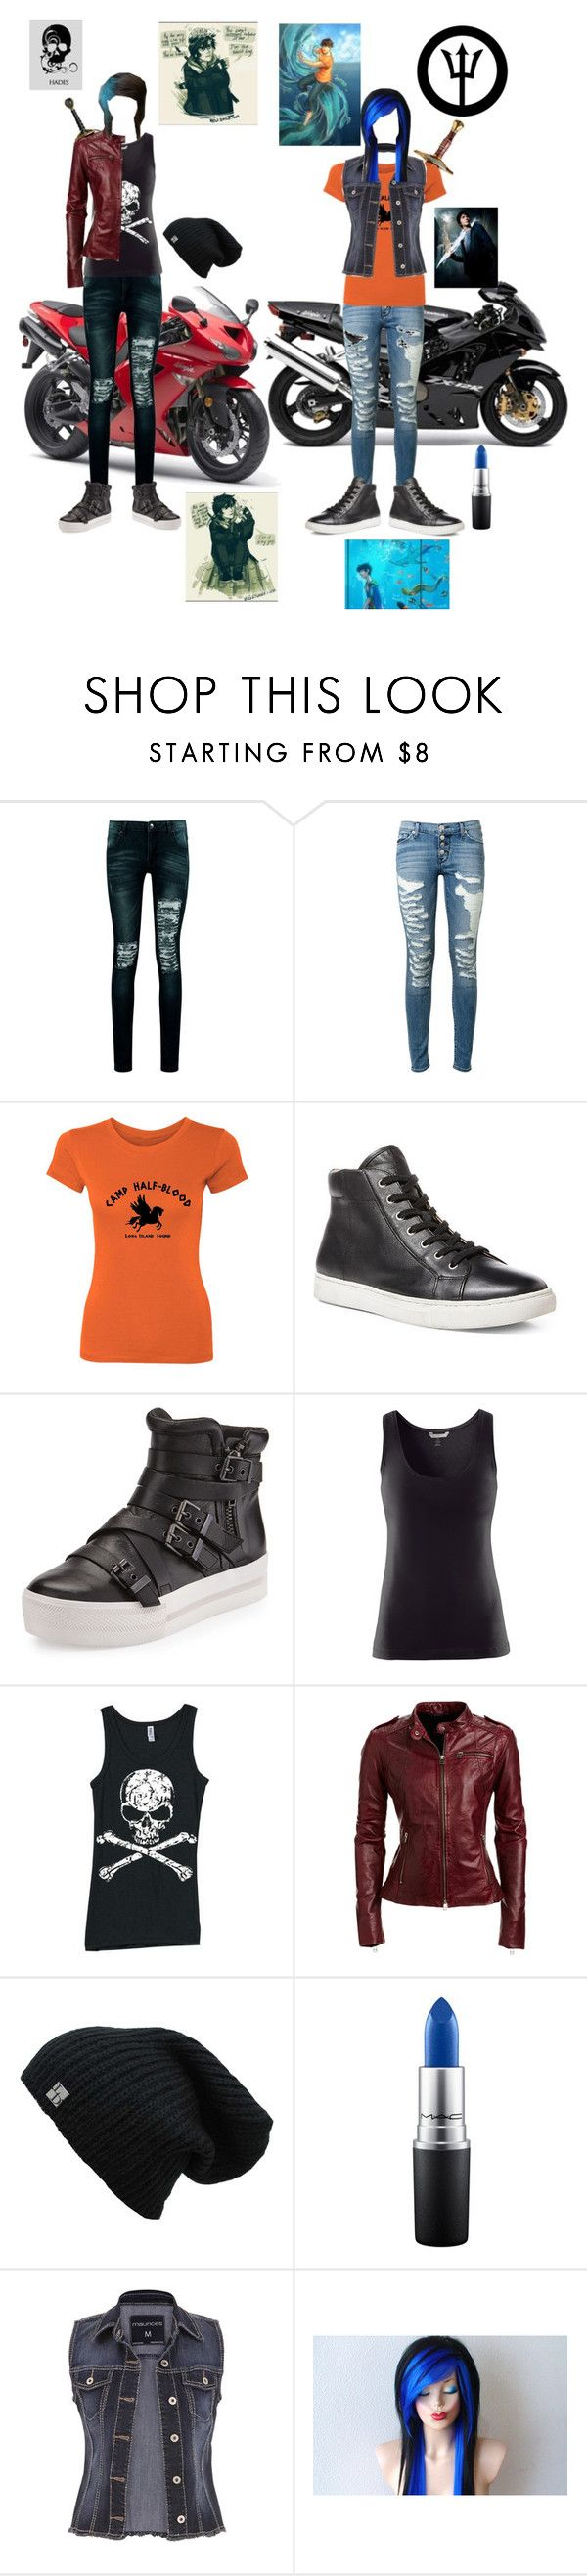 """""""Lea di Anglo and cara Jackson"""" by ironkyle ❤ liked on Polyvore featuring Kawasaki, Boohoo, Hudson, Ralph Lauren, Ash, H&M, Danier, MAC Cosmetics and maurices"""